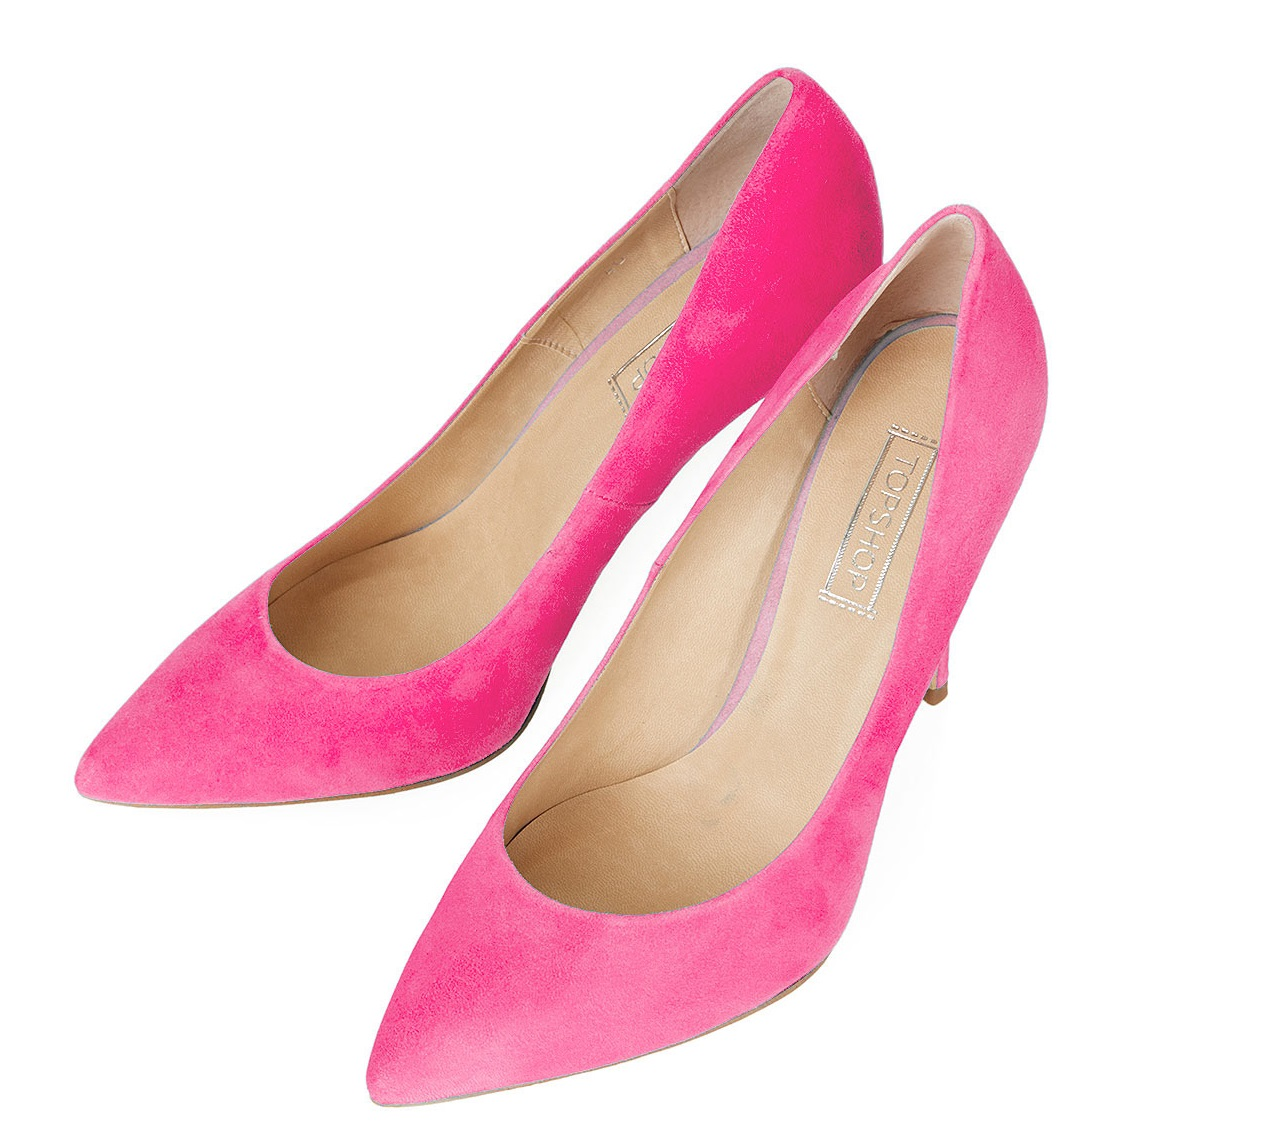 Shoes With Heels For Guys Uk